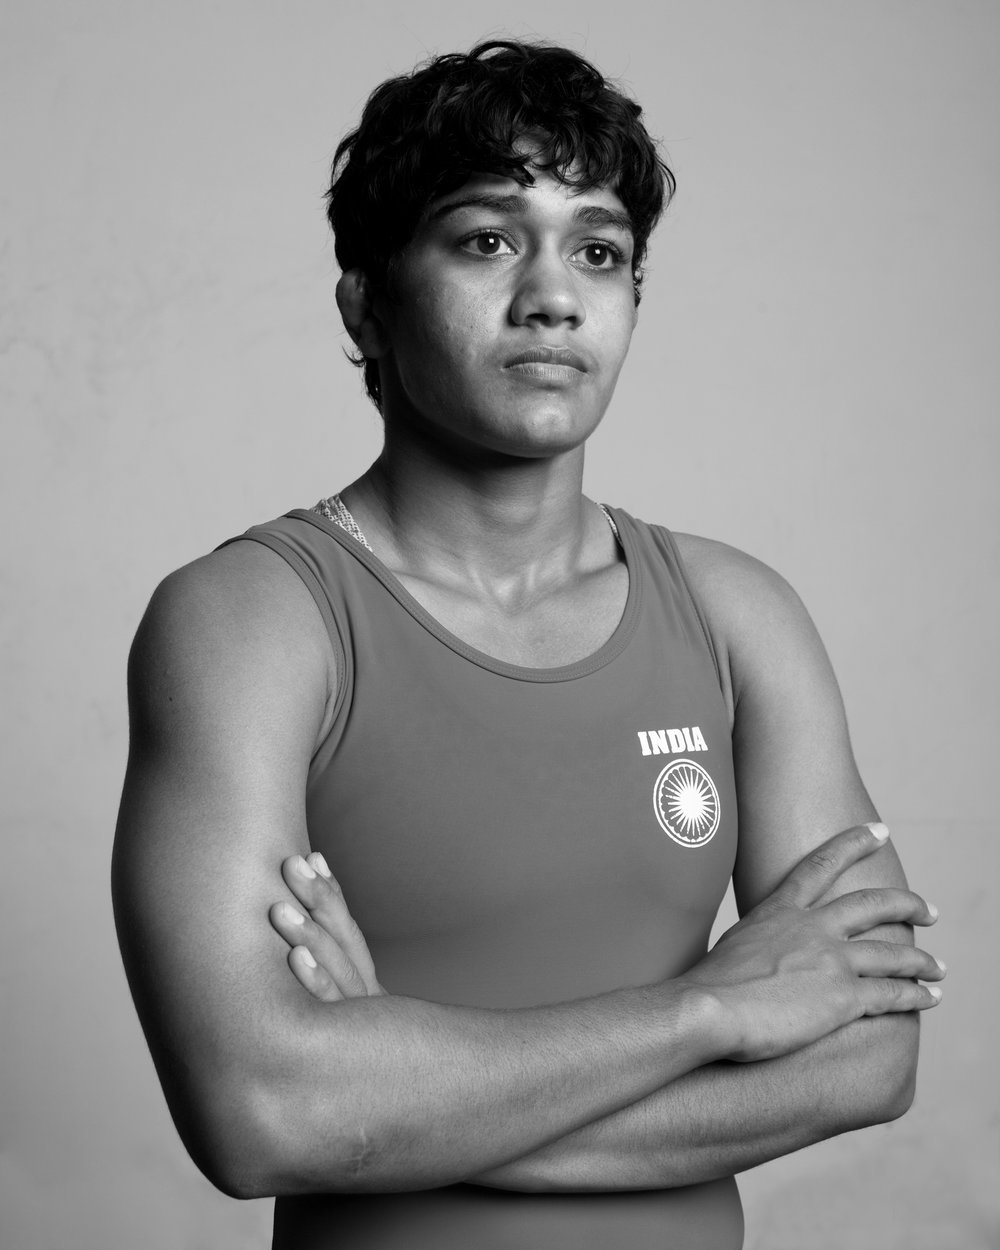 Prarthna Singh  - The Wrestlers